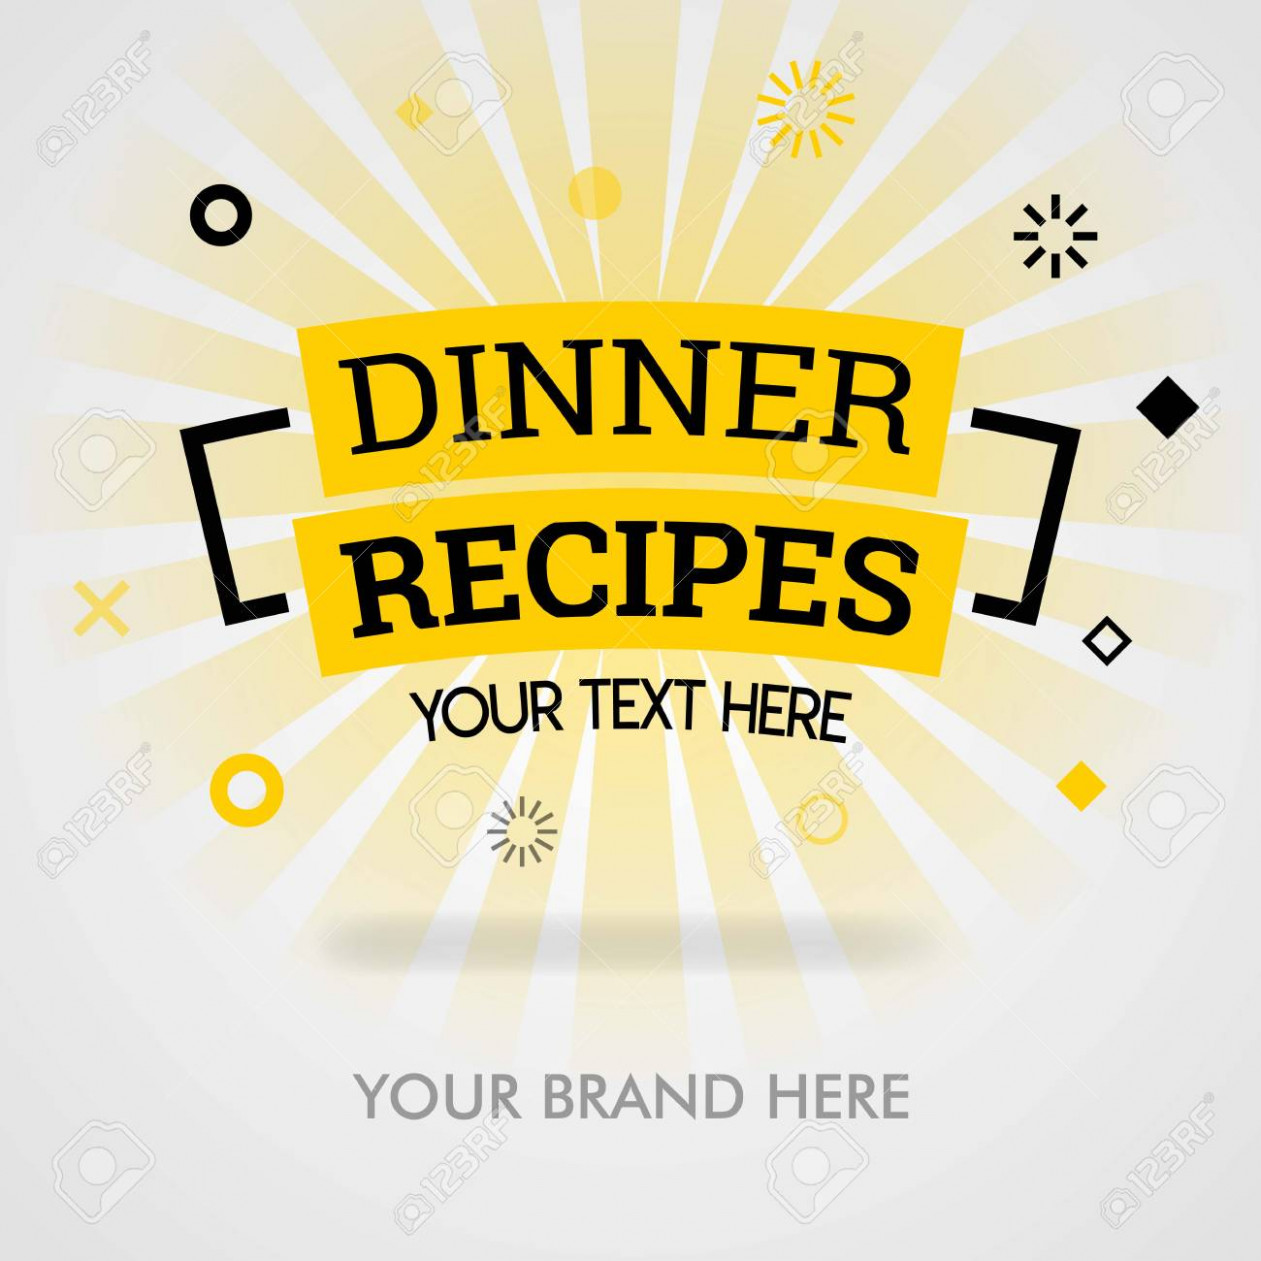 Dinner recipes book cover. dinner recipes cookbook. dinner place.